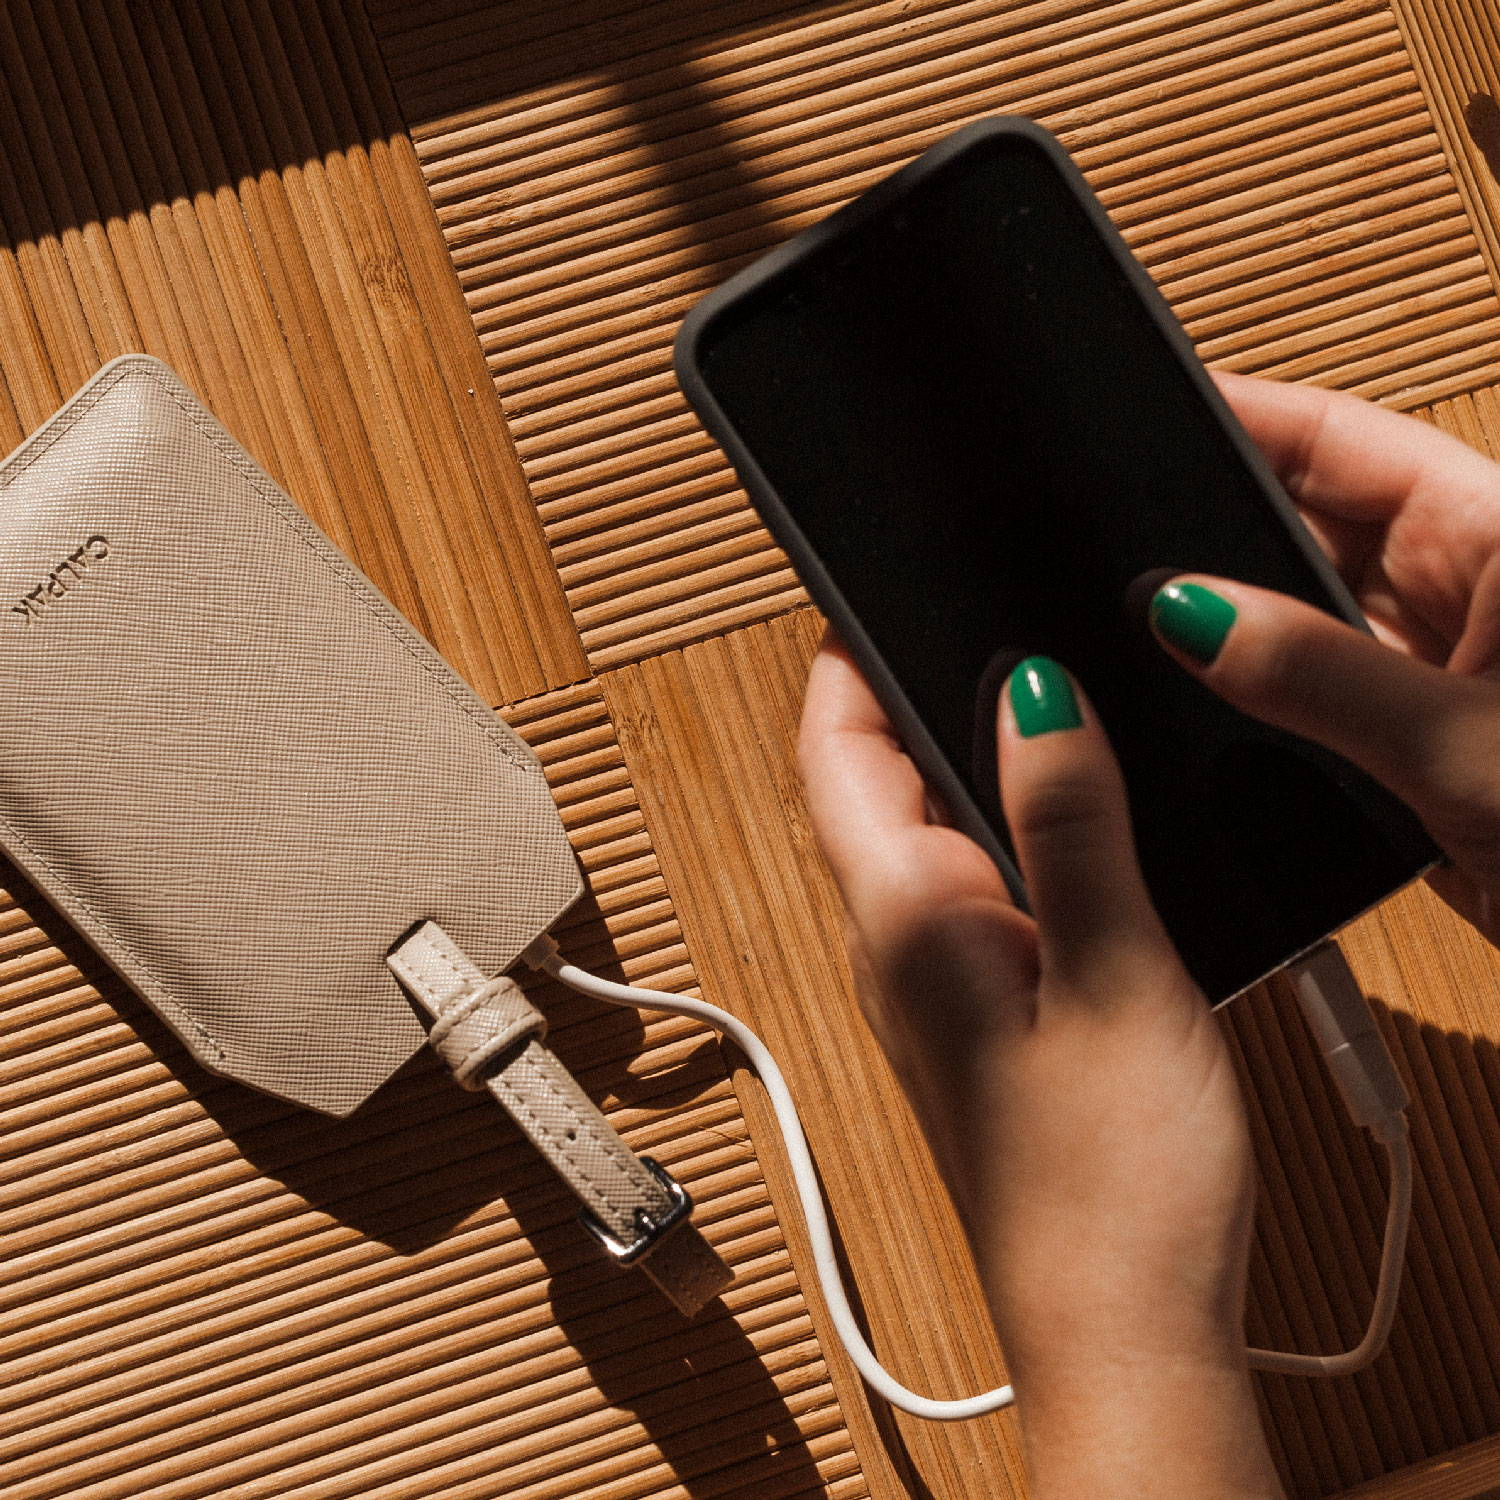 CALPAK Portable Charger with smartphone attached